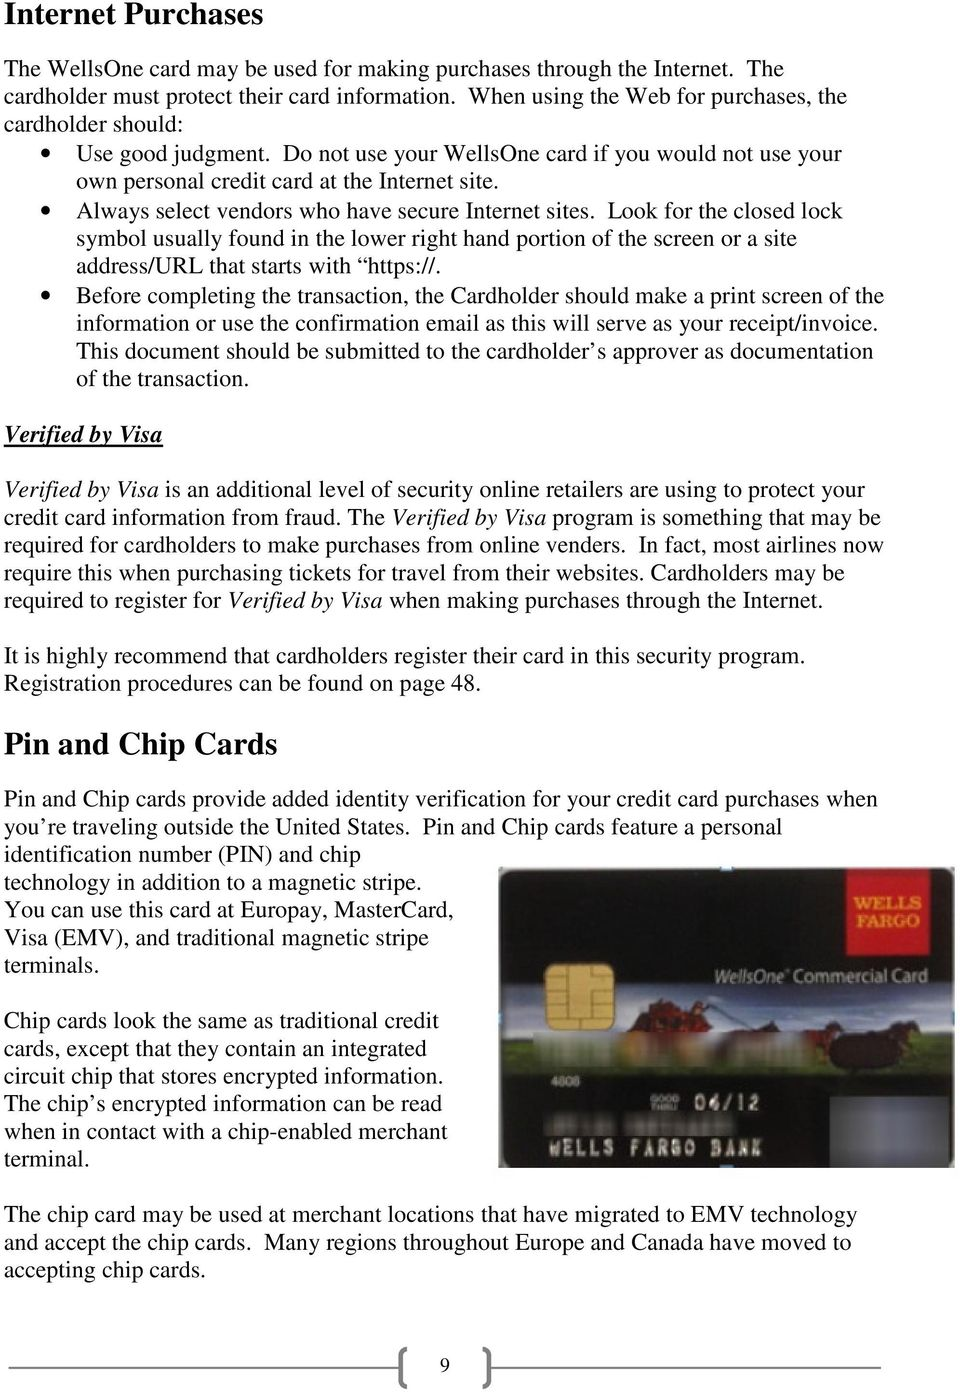 Wells Fargo Bank WellsOne Commercial Card Program. Policy and